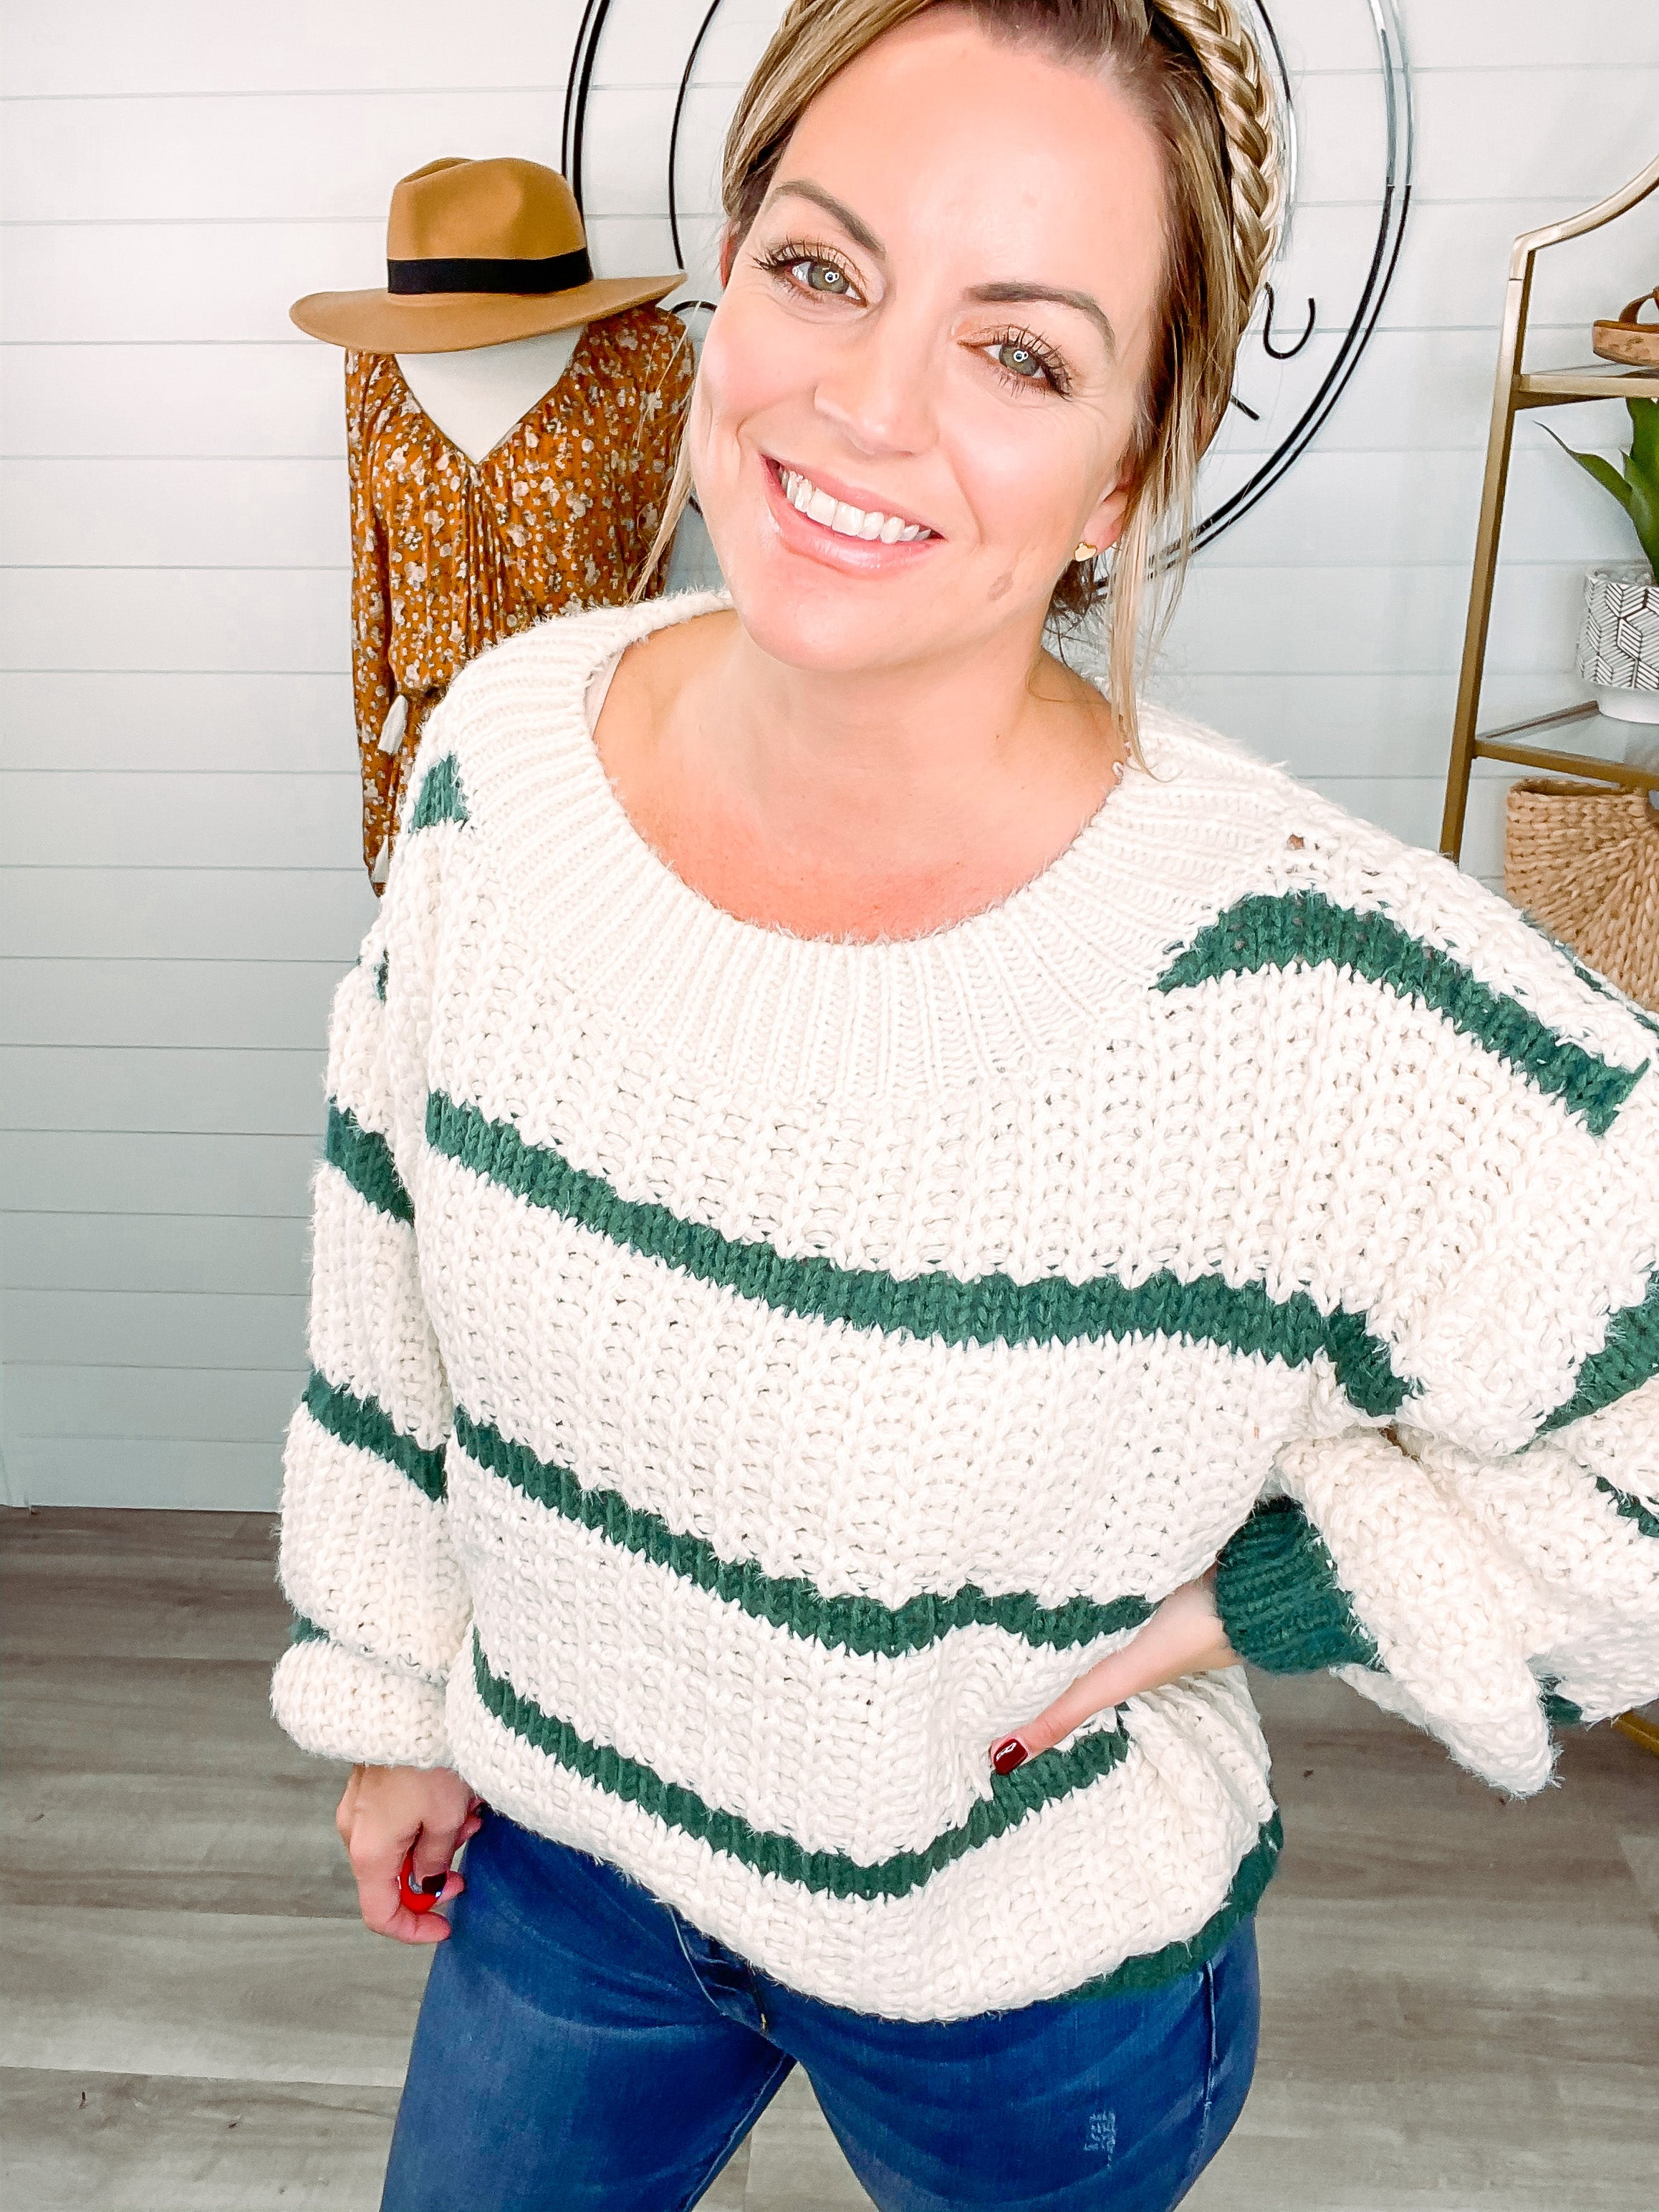 My Kind of Weather Striped Sweater Top - Ivory/Green *Final Sale*